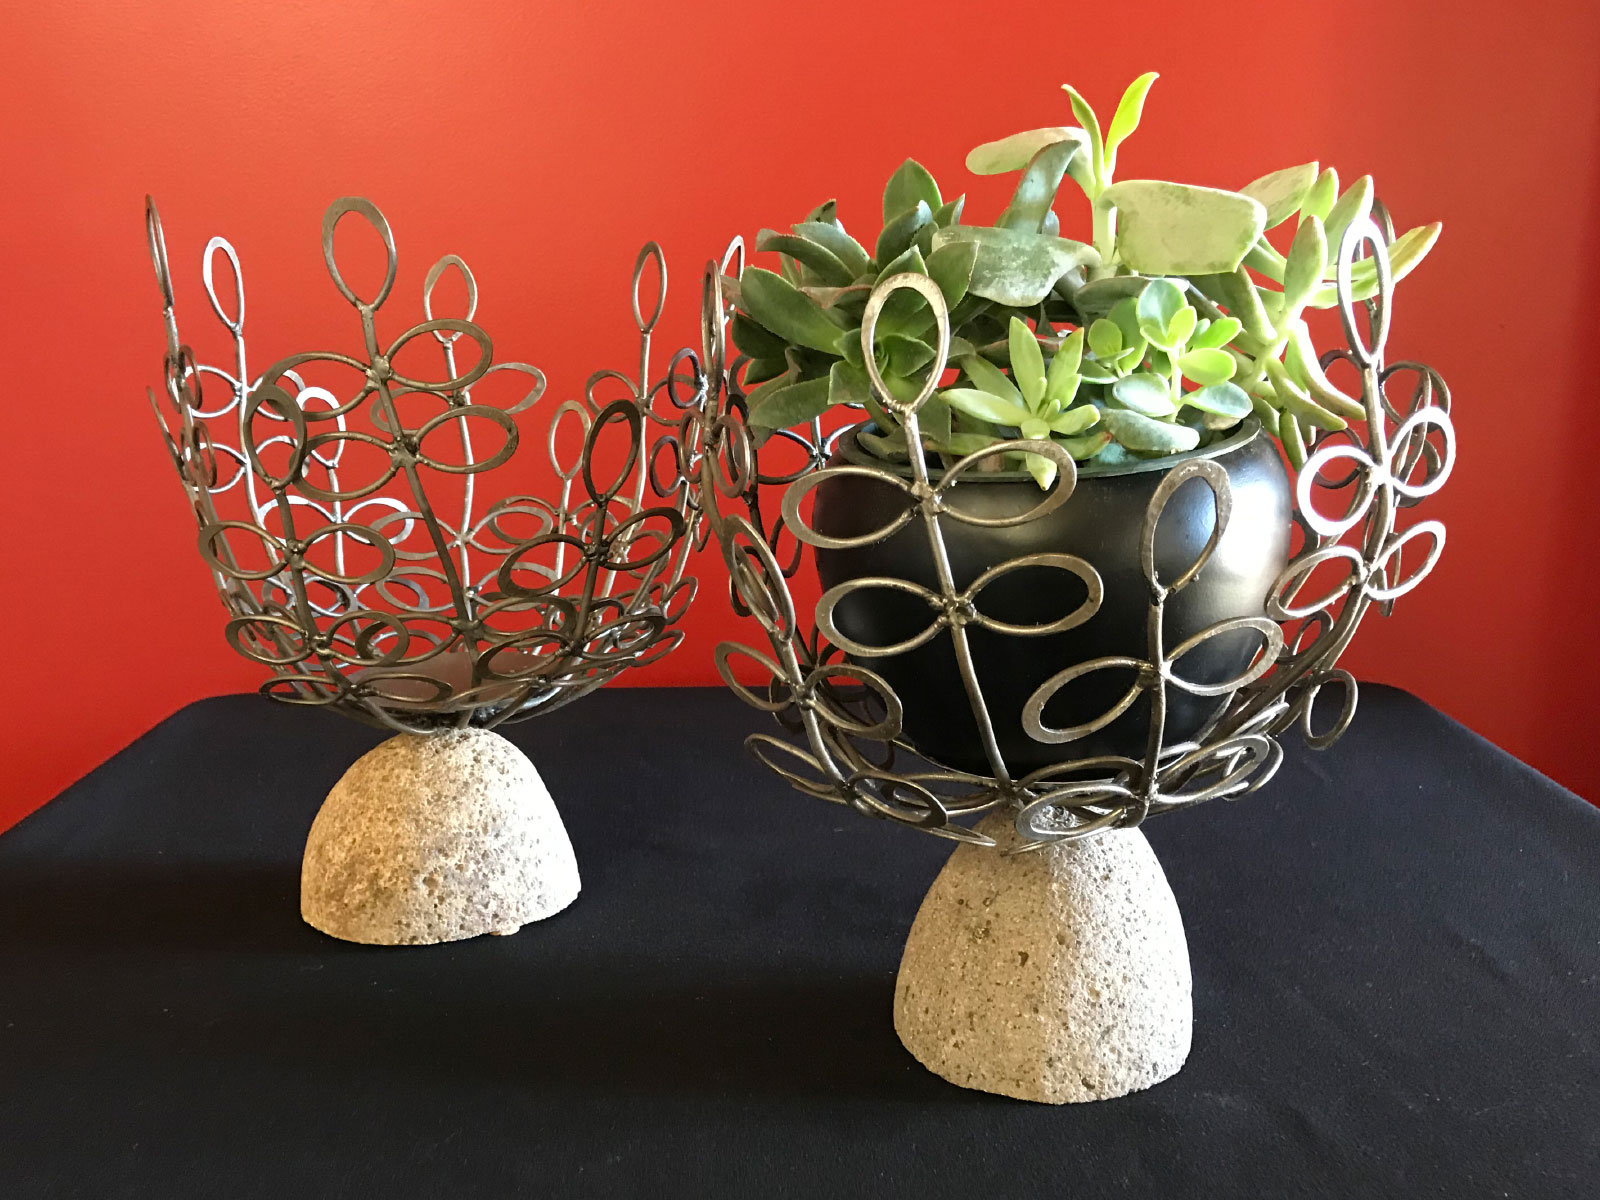 A flower pot of small green-leaf plants set in a designed metal cradle on top of decorative stone